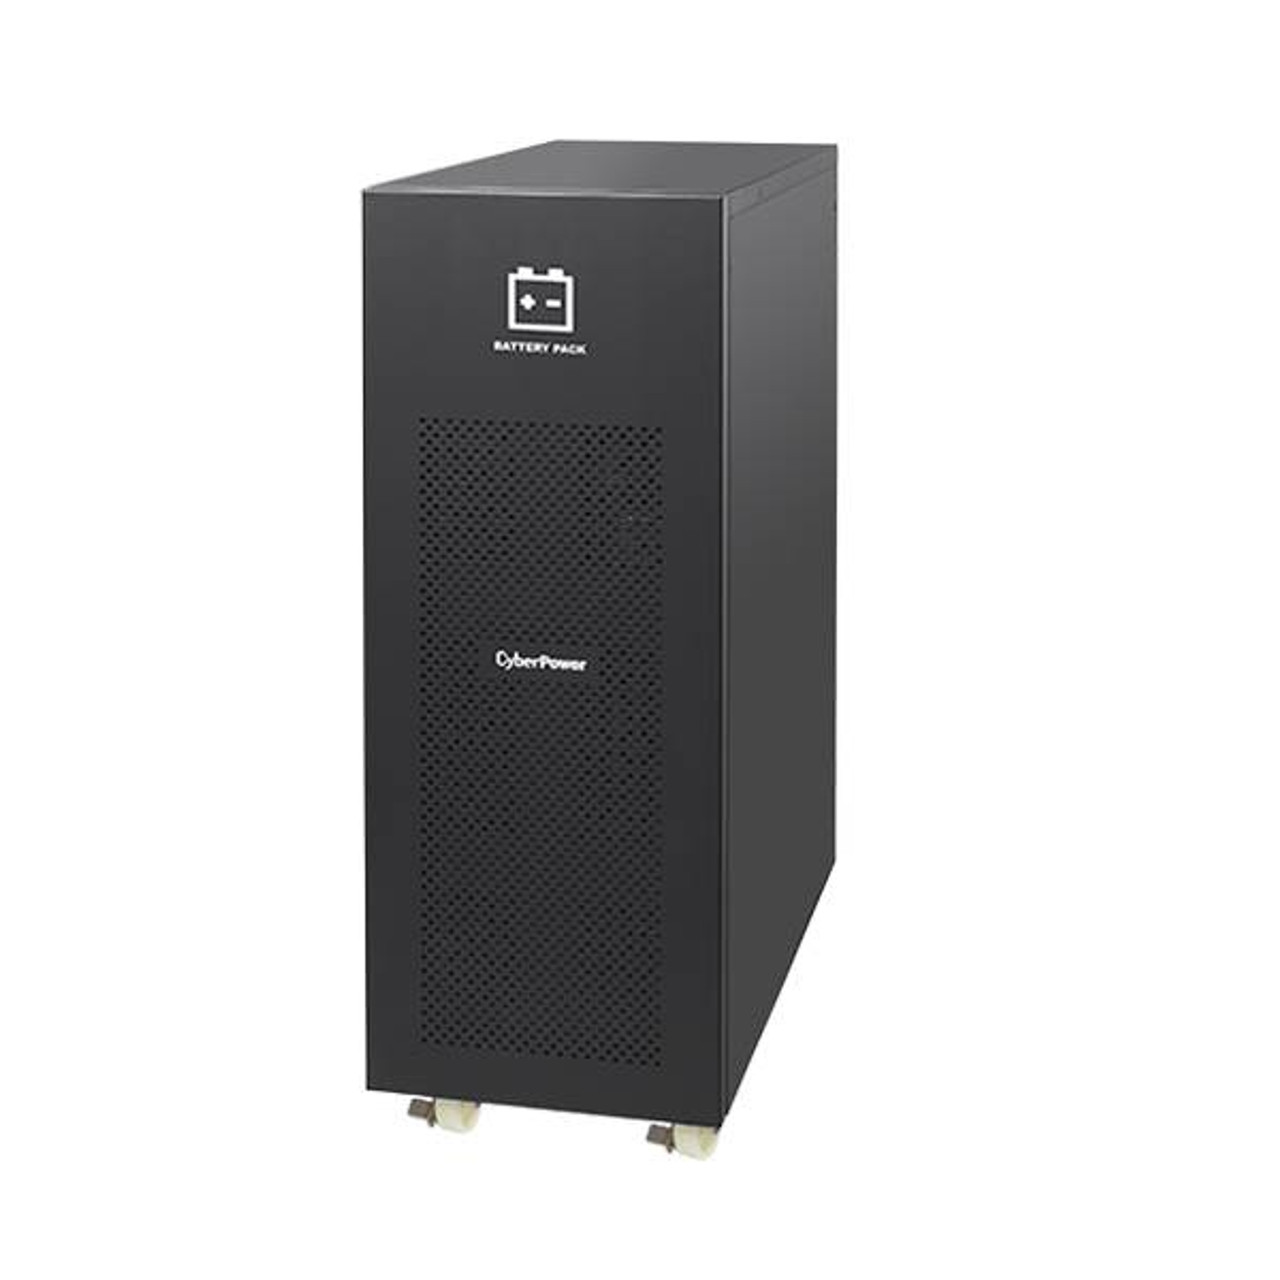 Image for CyberPower BPSE240V47AOA Extended Runtime Battery Pack for OLS10000E CX Computer Superstore